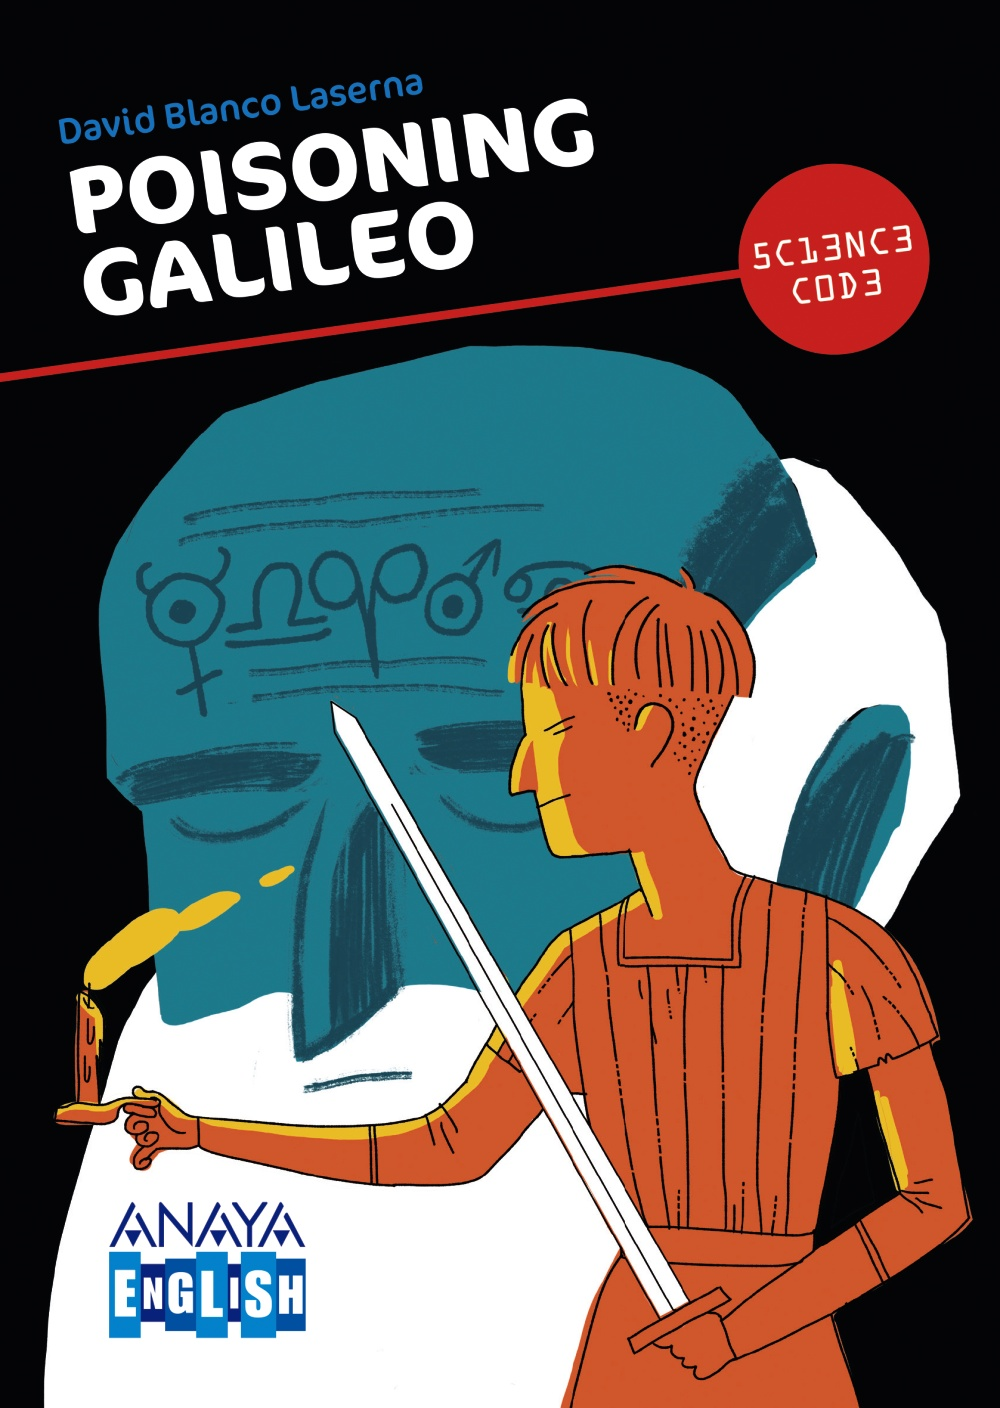 Poisoning Galileo. David Blanco Laserna